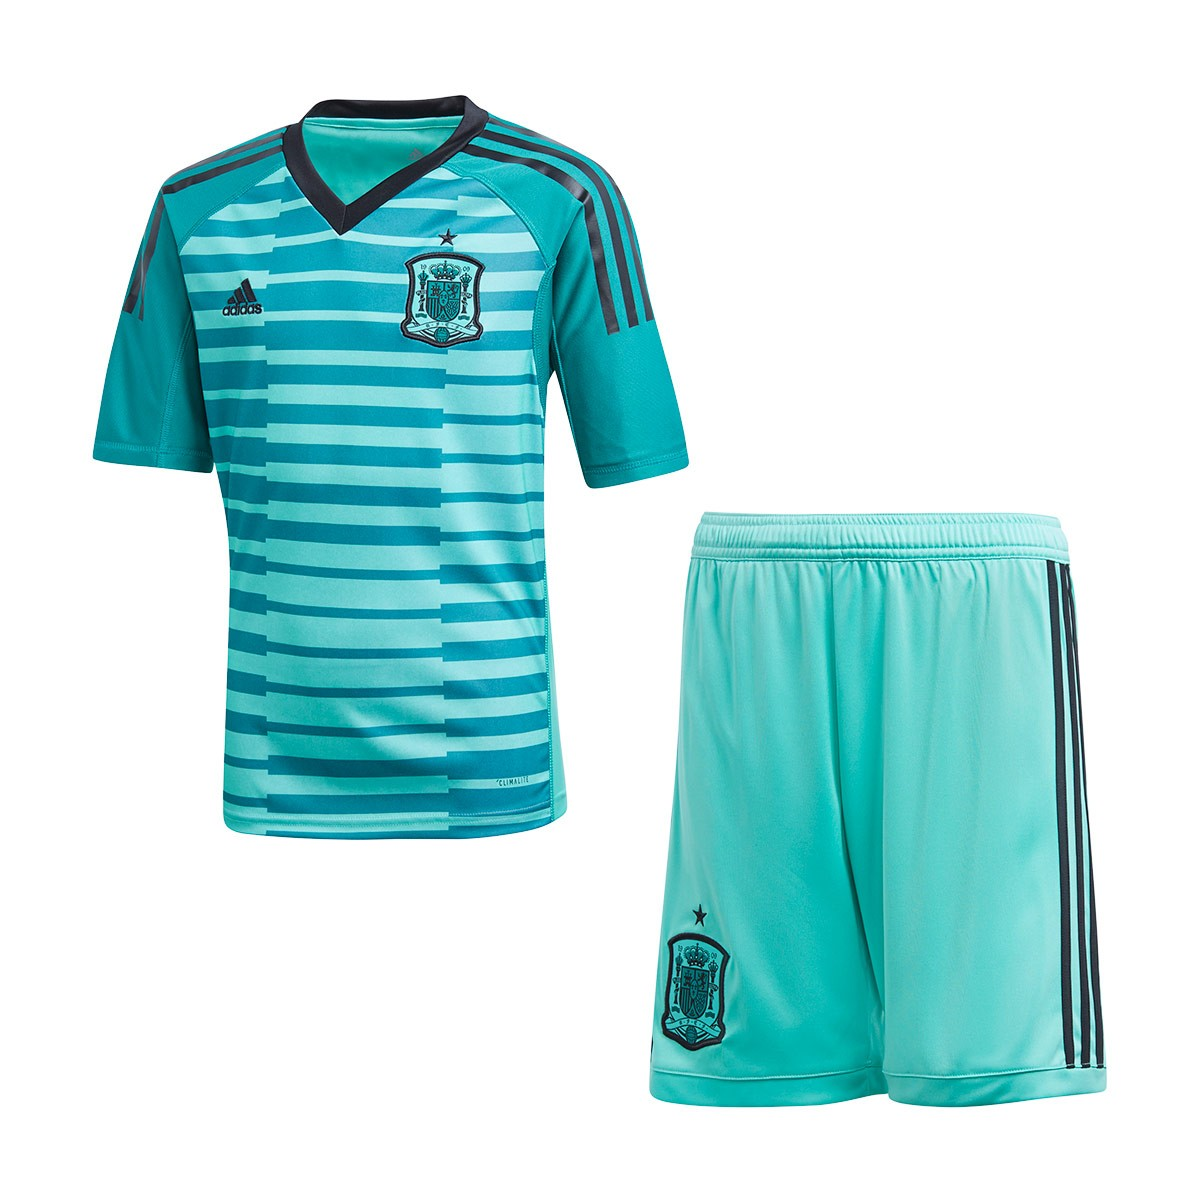 5c79887a4 adidas Kids Spain Goalkeeper 2017-2018 Home Kit. Aero green-Power ...